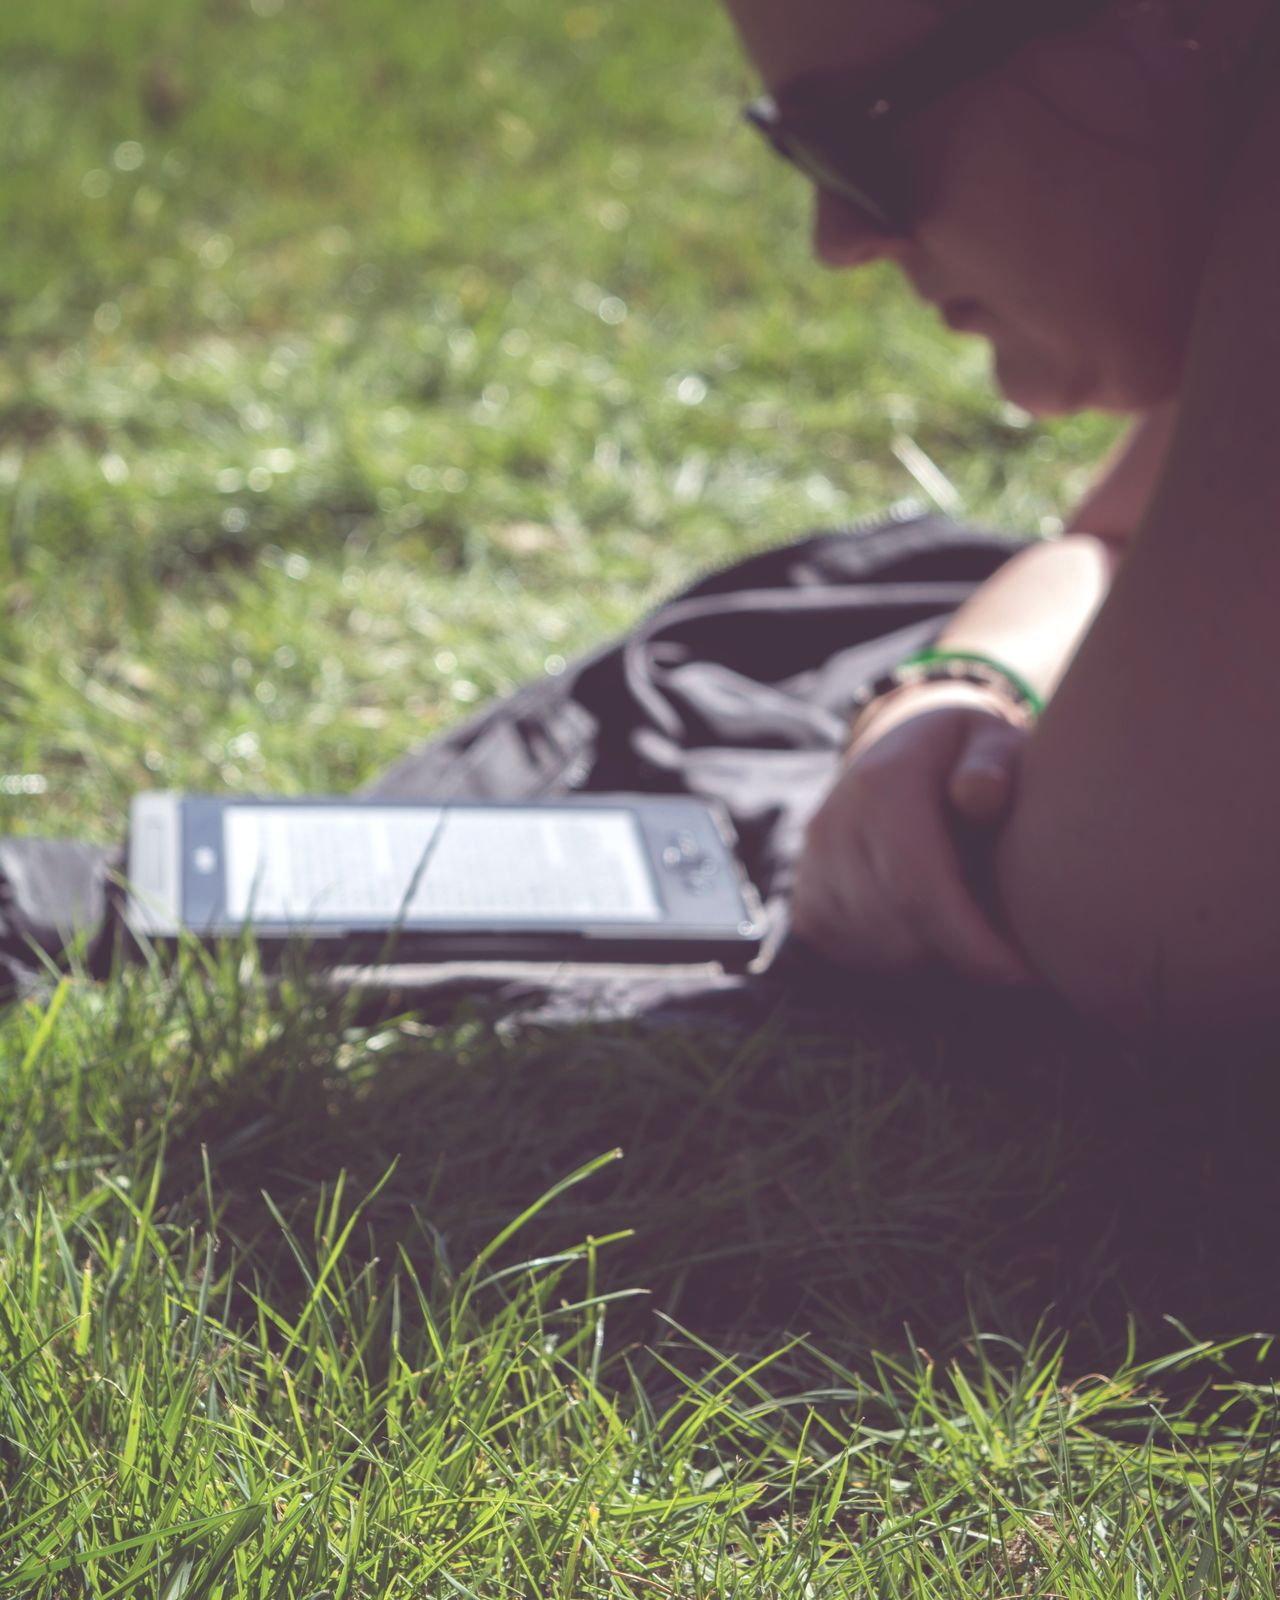 Grass One Person Adult People Outdoors Human Body Part Close-up Reading Ebook Knowledge Inspiring Inspirational Depth Of Beauty Eyeem Market Team Getty+EyeEm Collection Getty Images Gettyimages Environment Real People Depht Of Field Gettyimagesgallery Study Studying Learning Growth